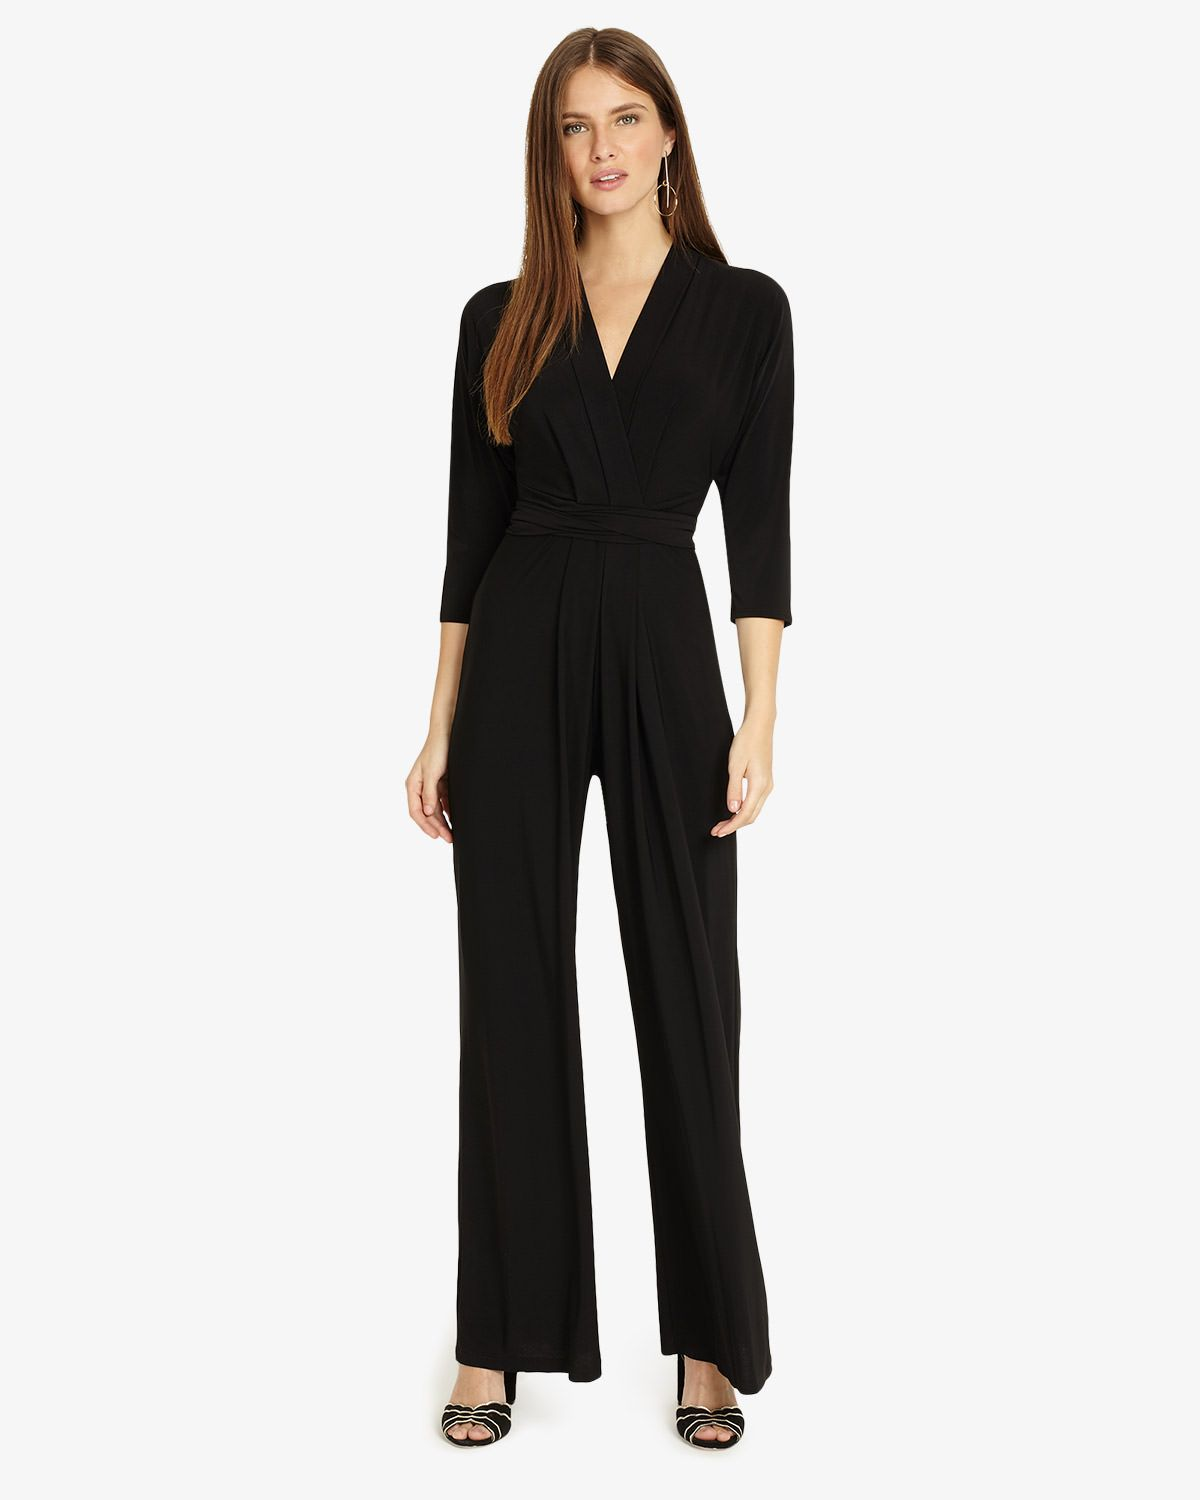 a4895e89c409 Phase Eight Tia 3 4 Sleeve Jumpsuit Black